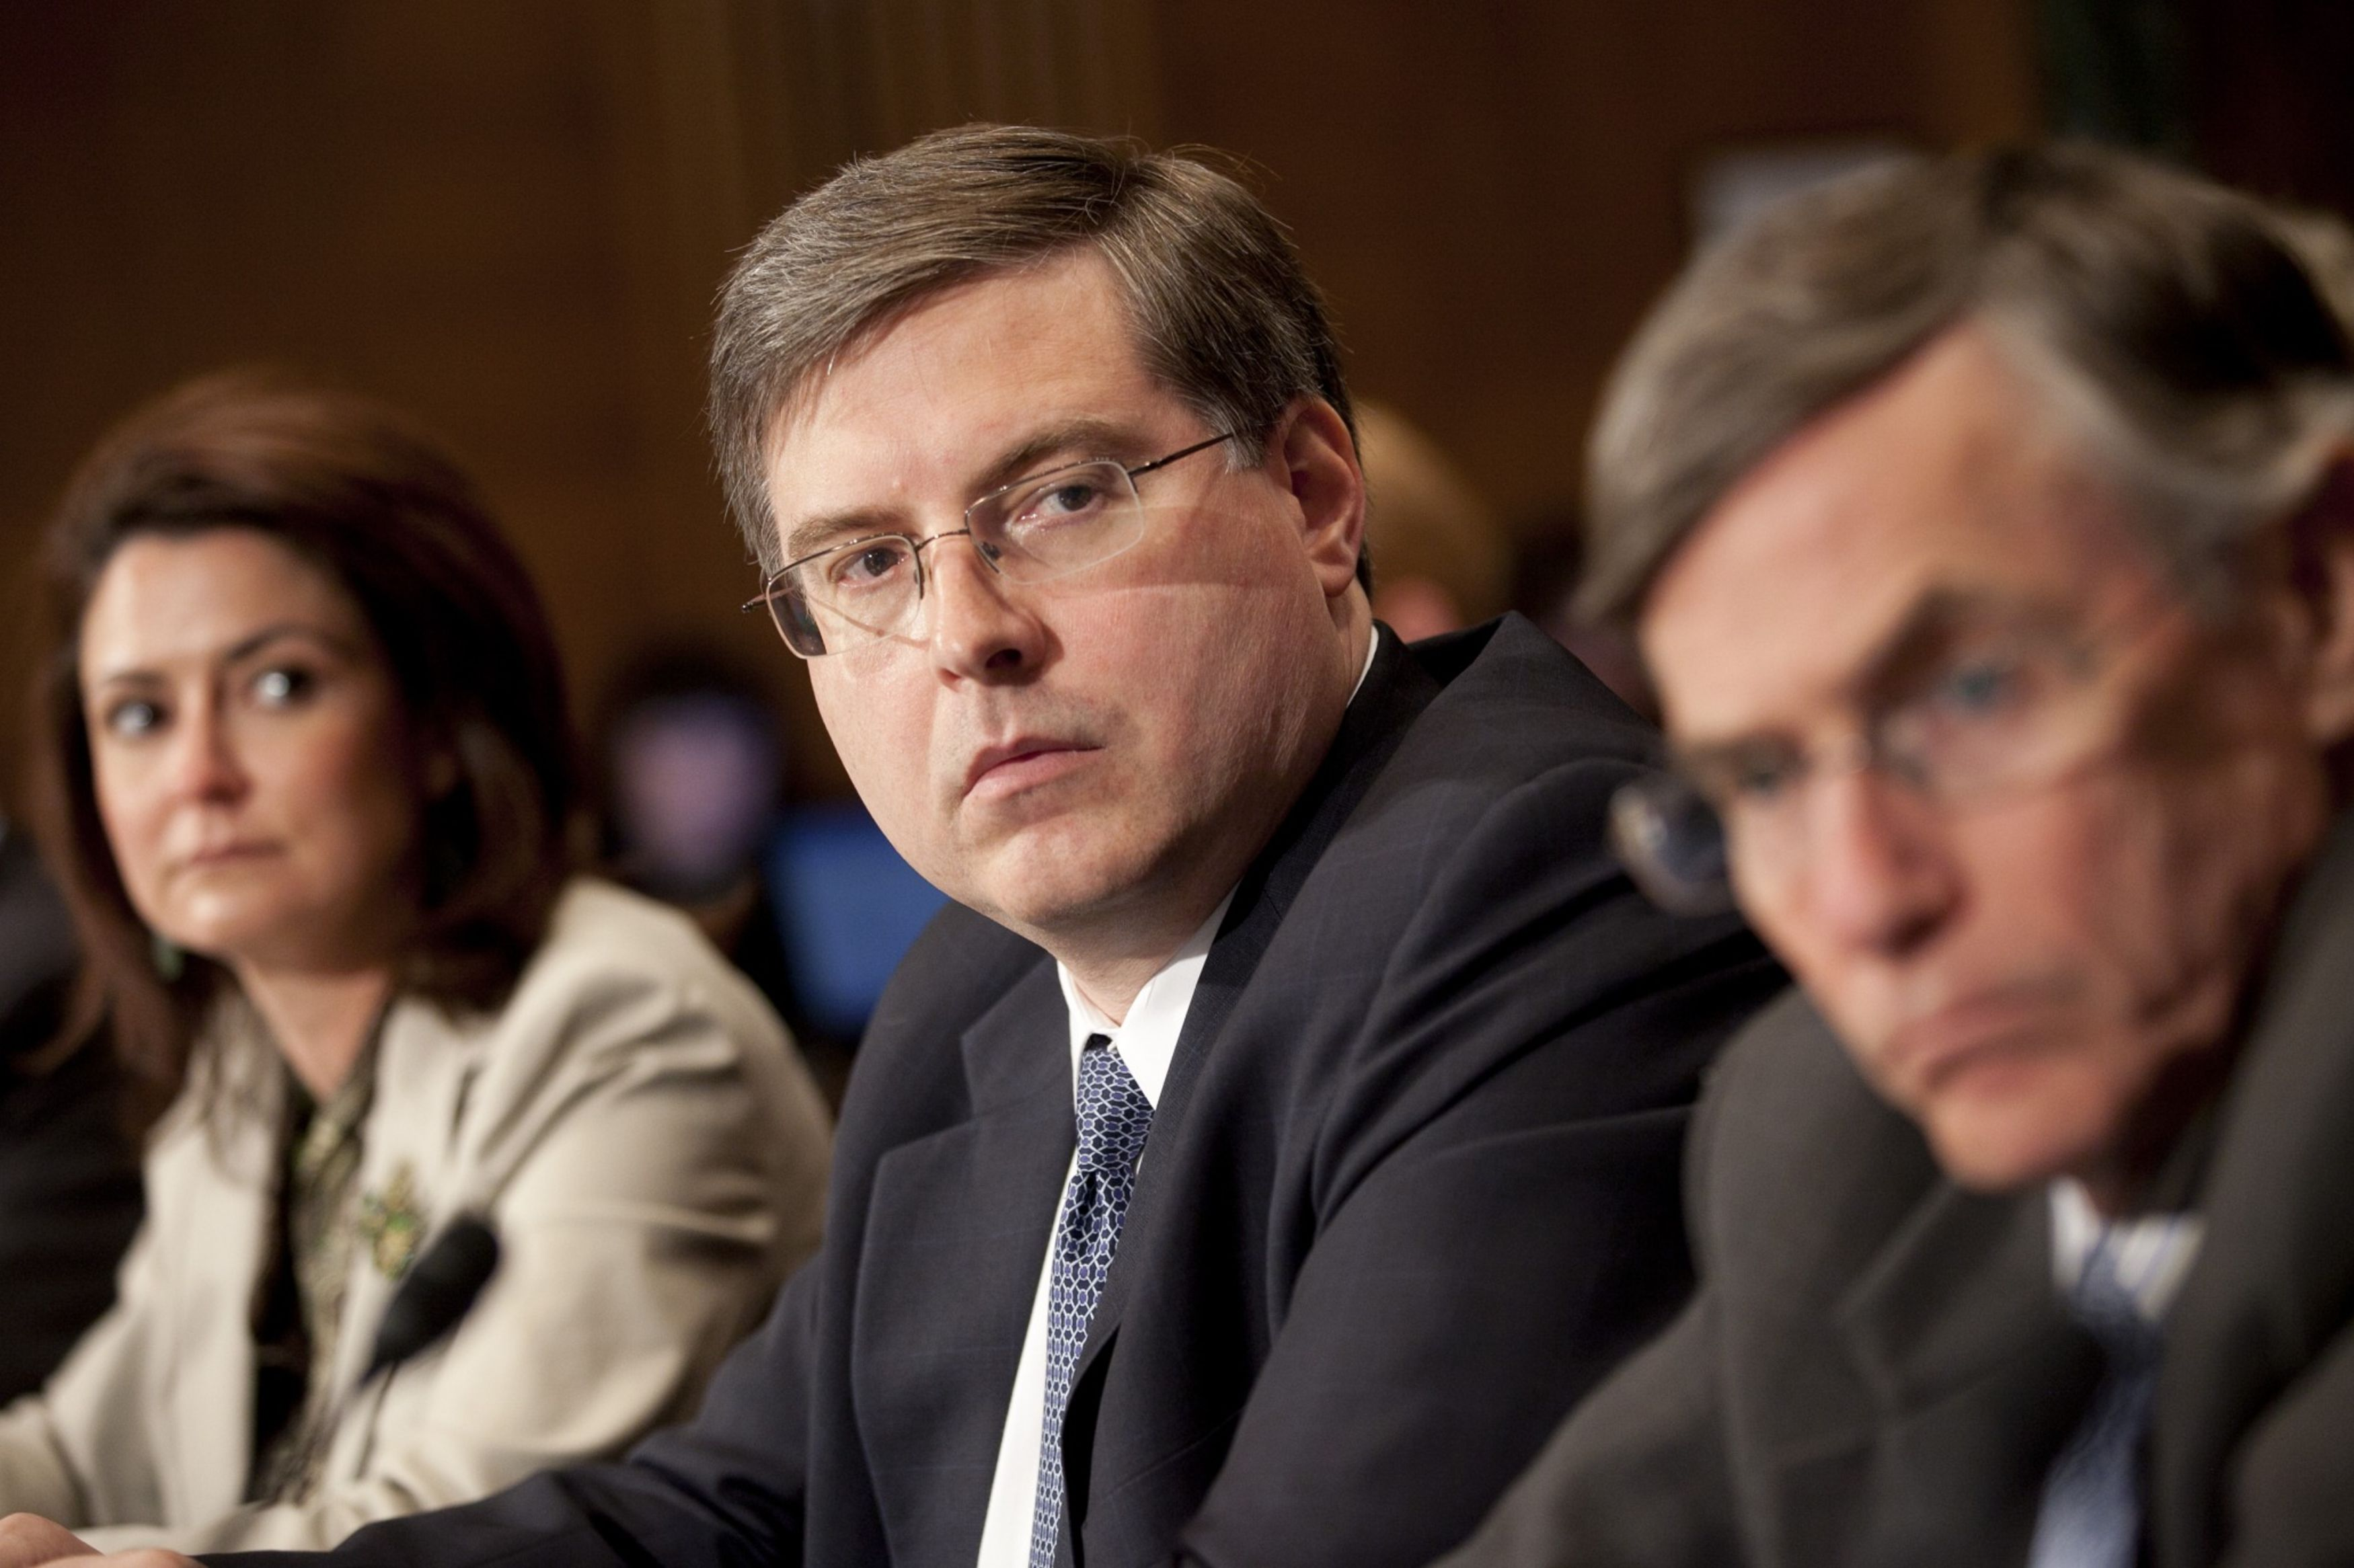 FINRA Working on Reg BI Guidance, Mulling Exam Changes: Cook